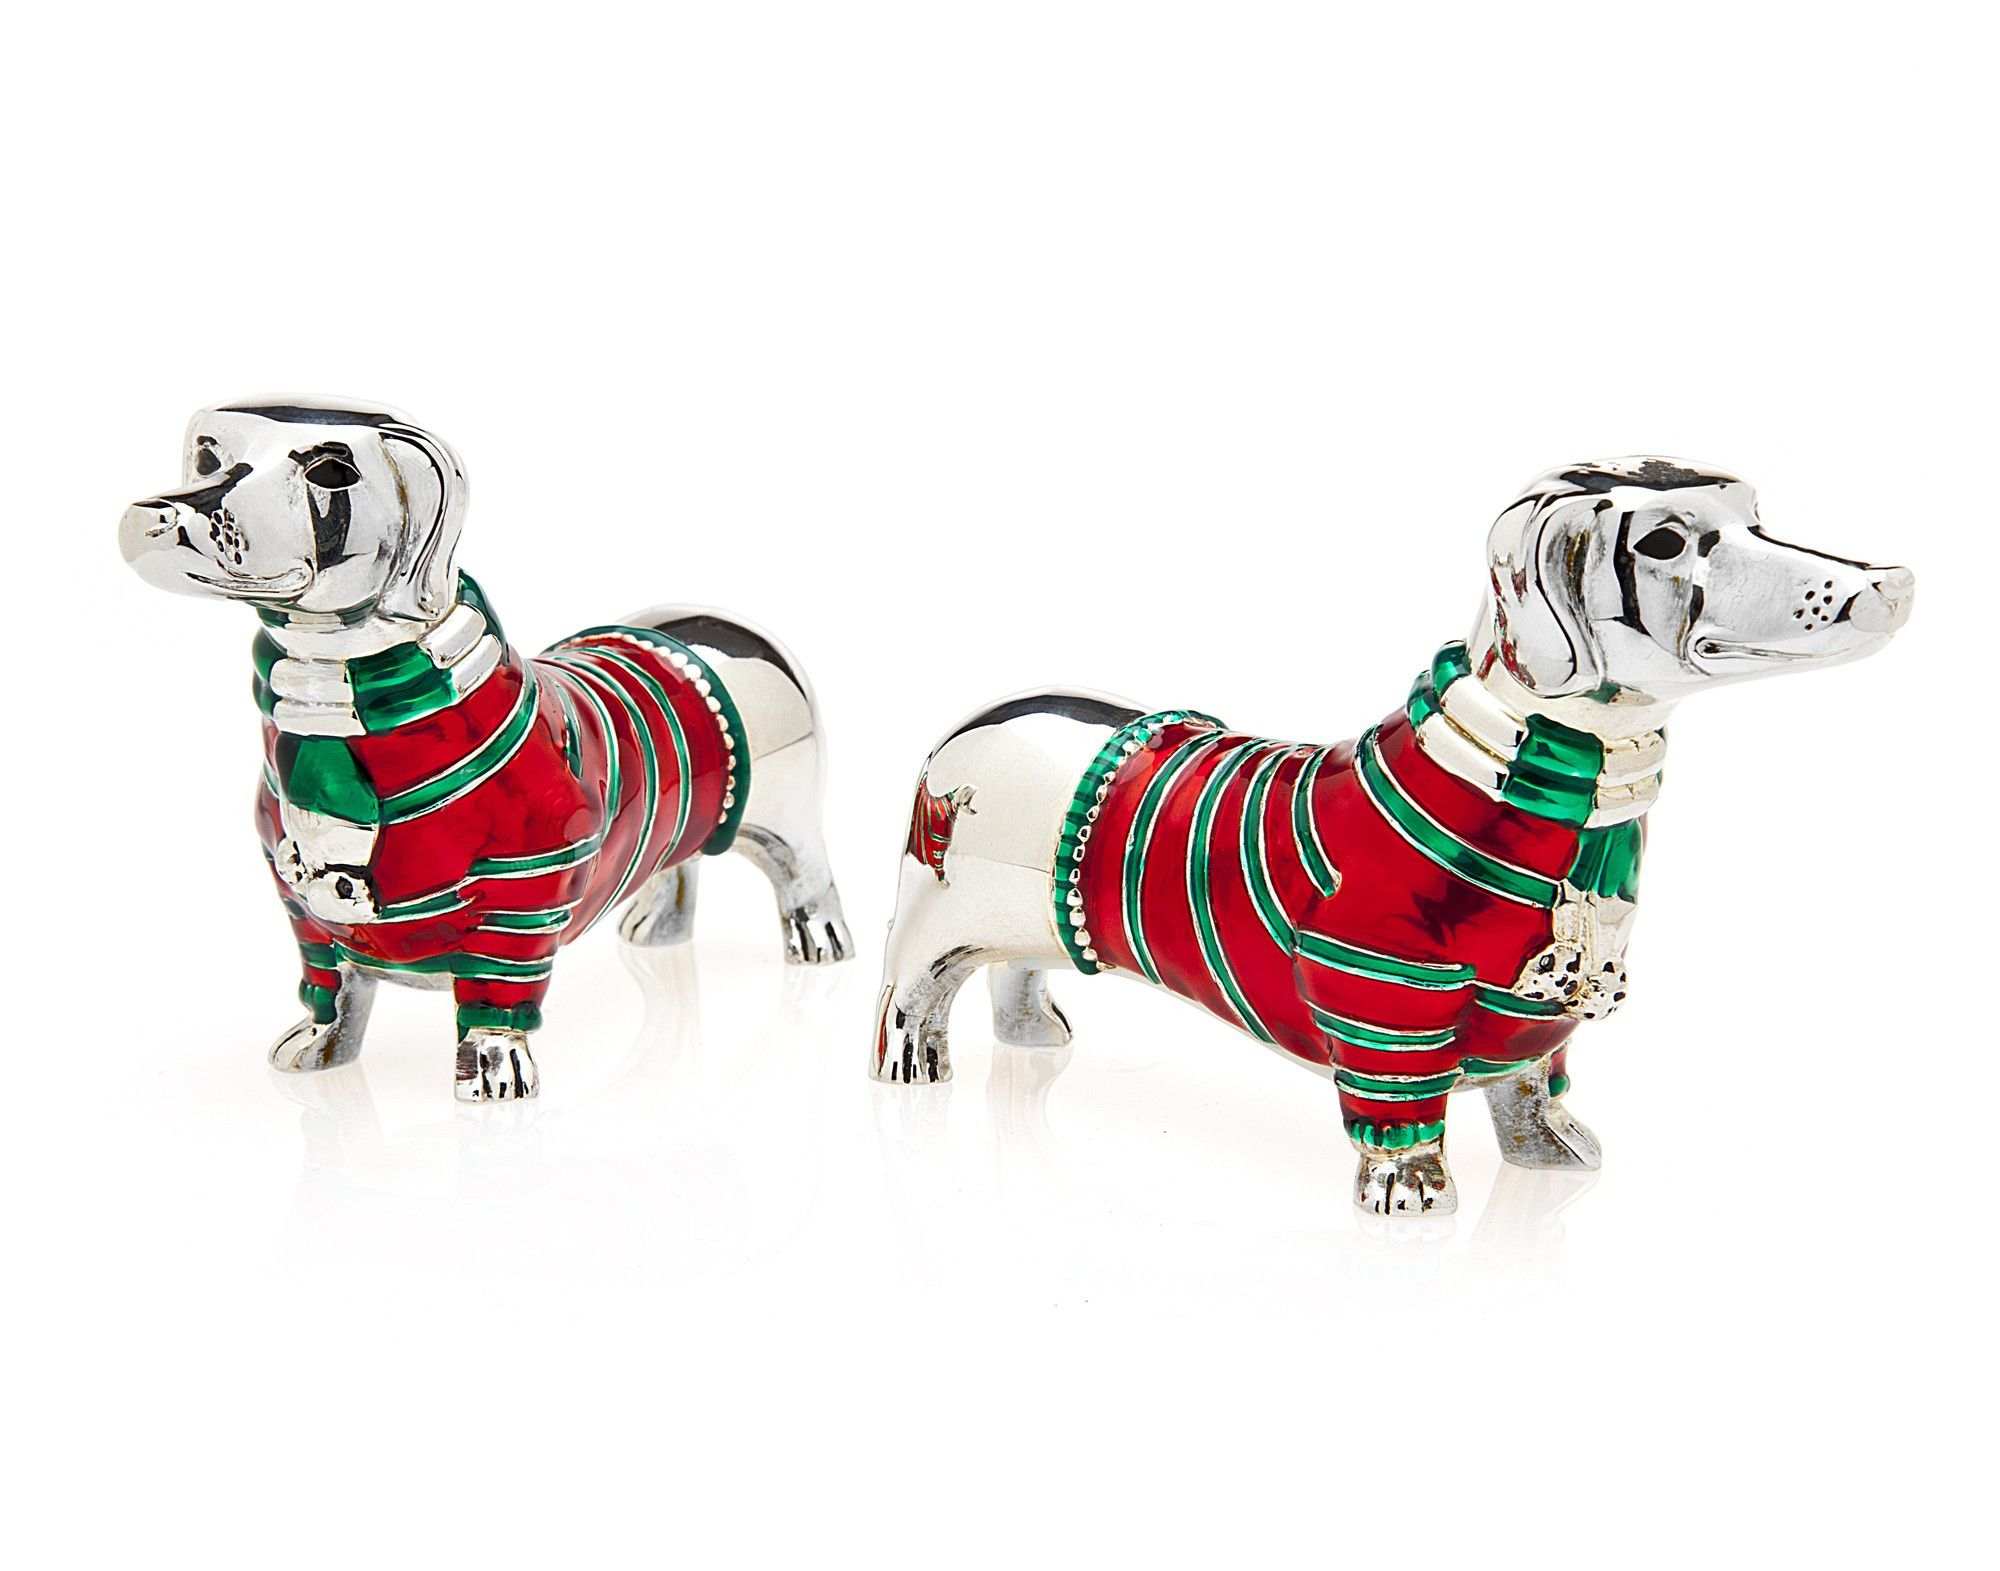 These adorable Dachshunds are wearing their sweaters and scarves and they will look adorable on display all winter long.  Dachshund Salt and Pepper Set - Premier Home & Gifts